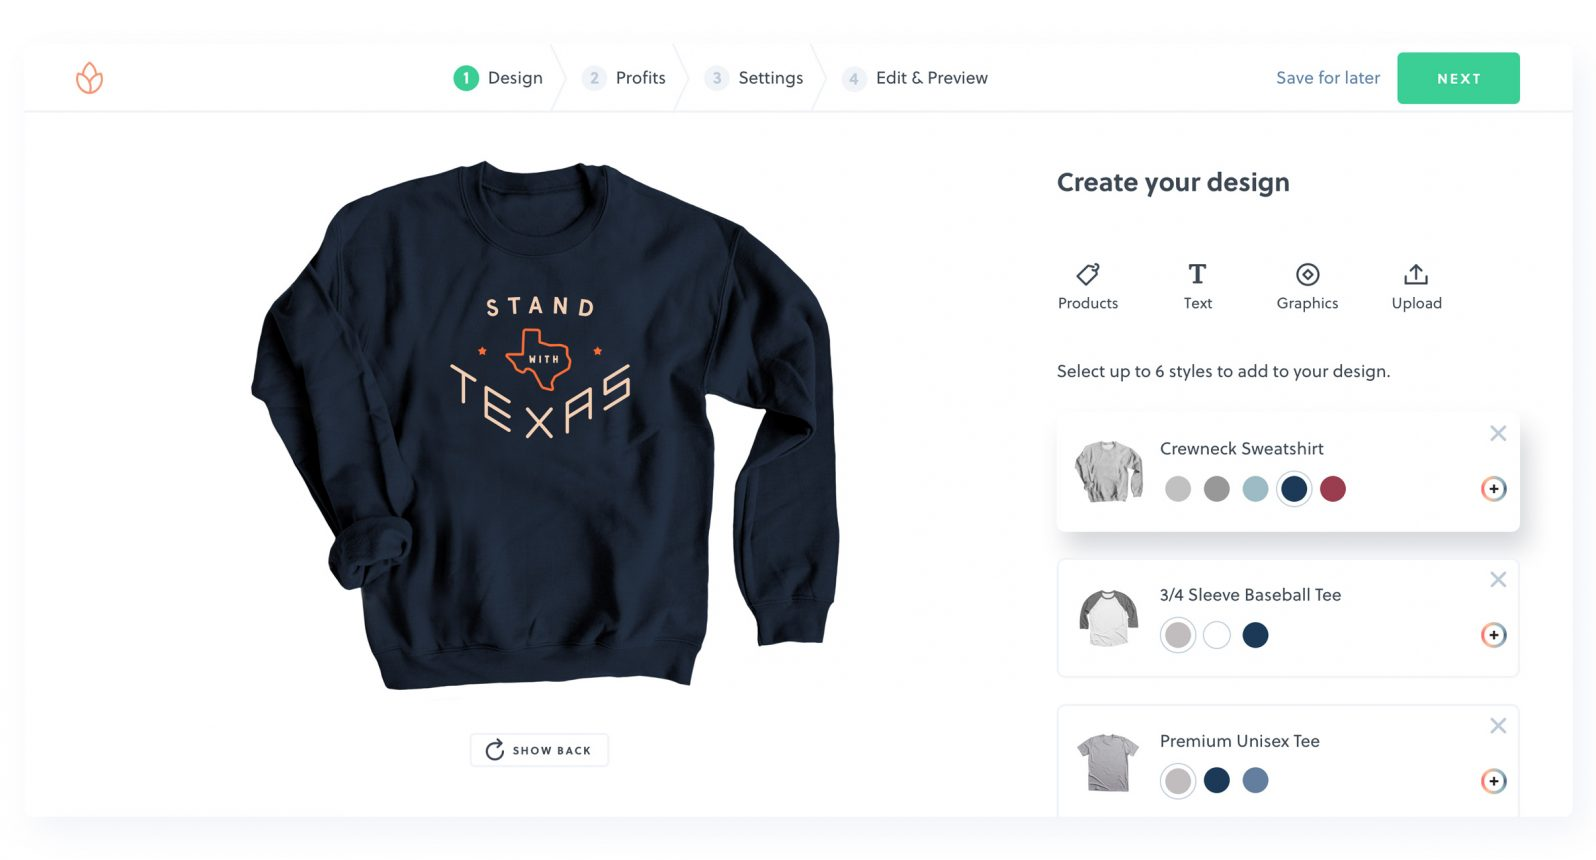 352a55573d5 how to design a shirt - design tool